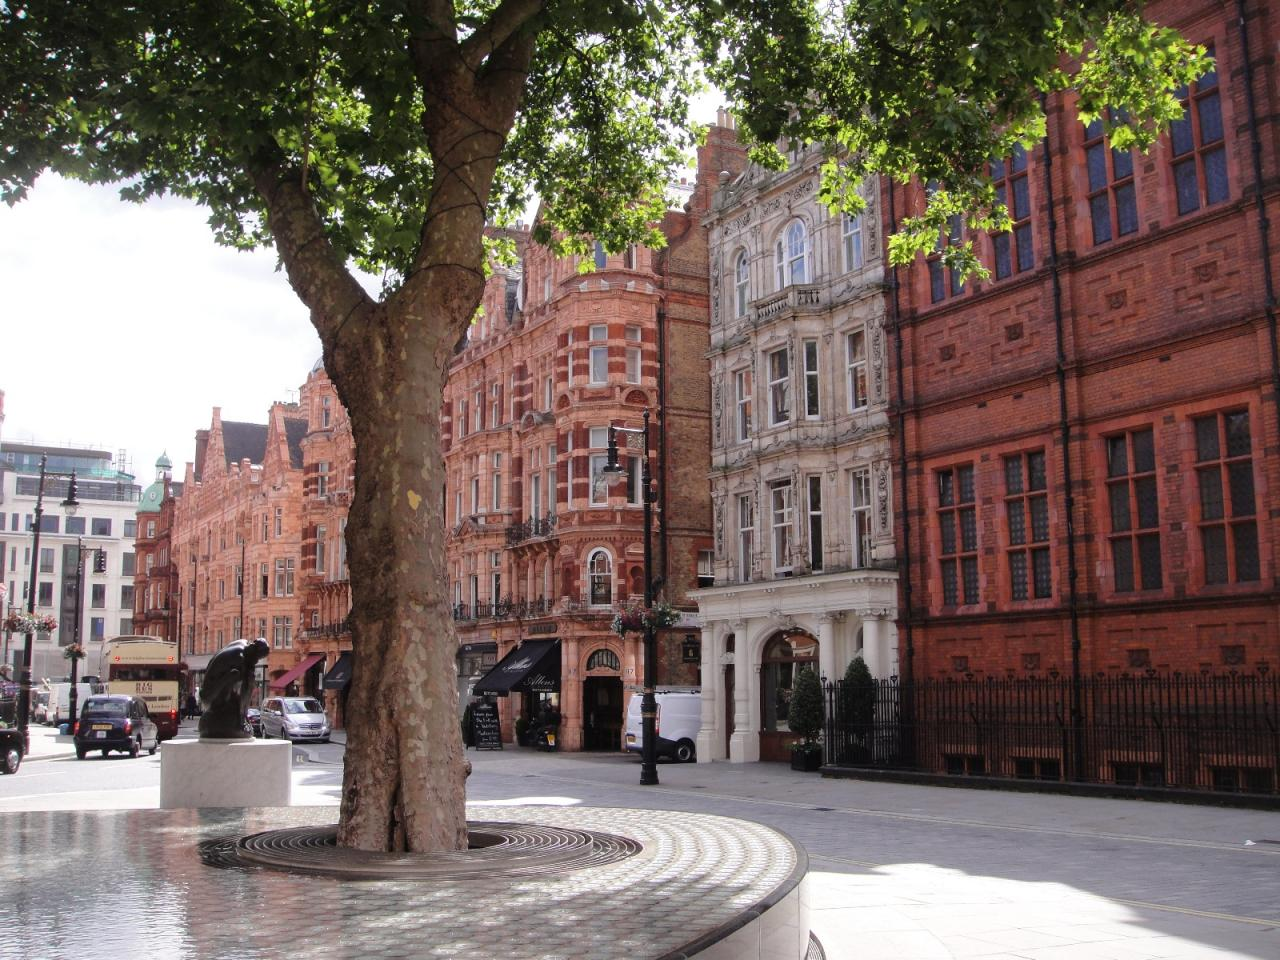 Top 10 Areas to Live in London - London Expats Guide